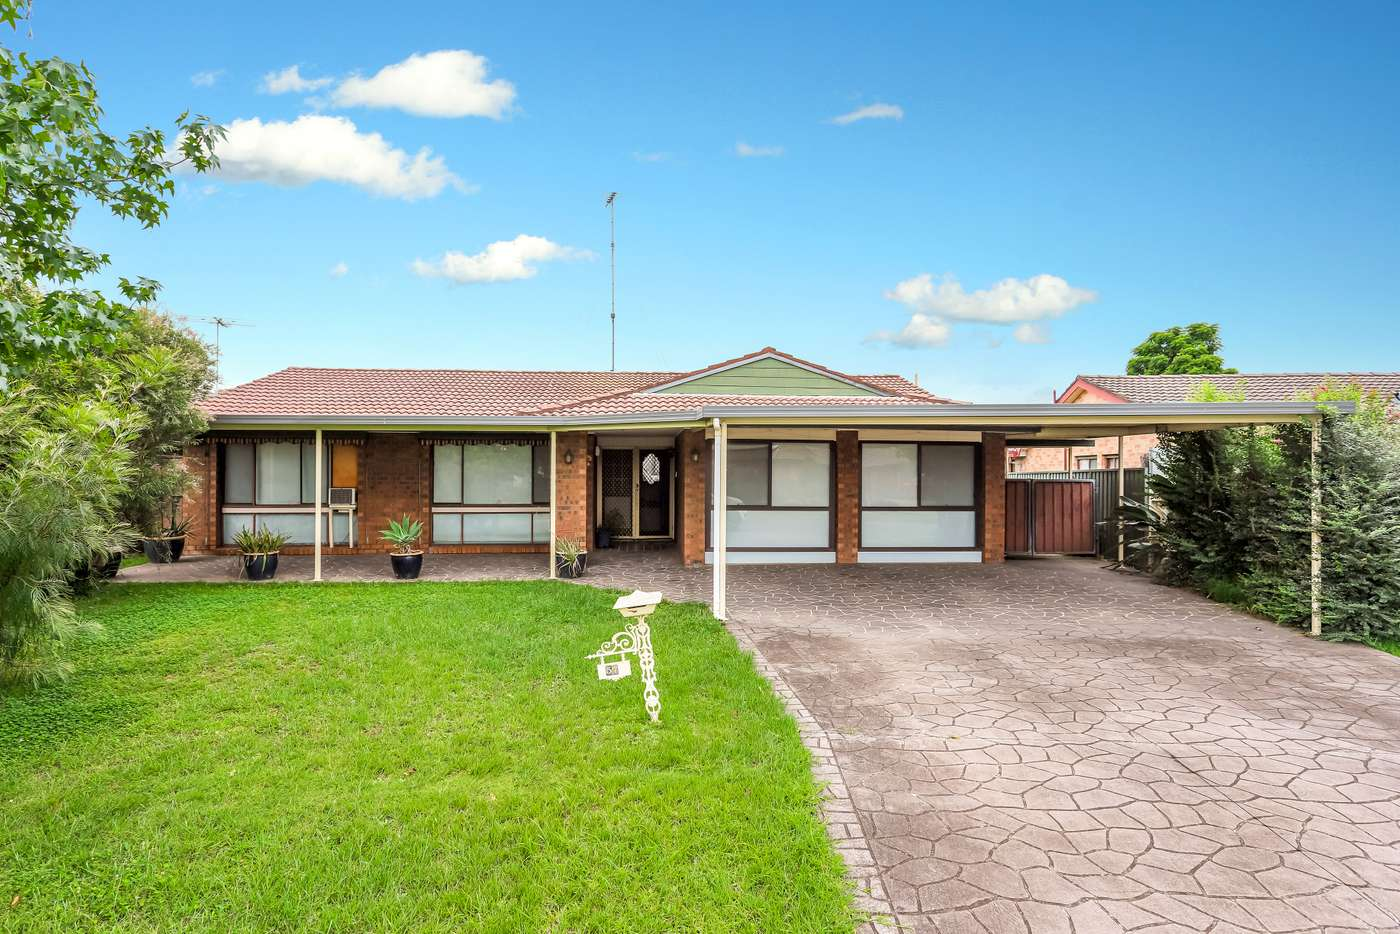 Main view of Homely house listing, 57 Horseshoe Circuit, St Clair NSW 2759